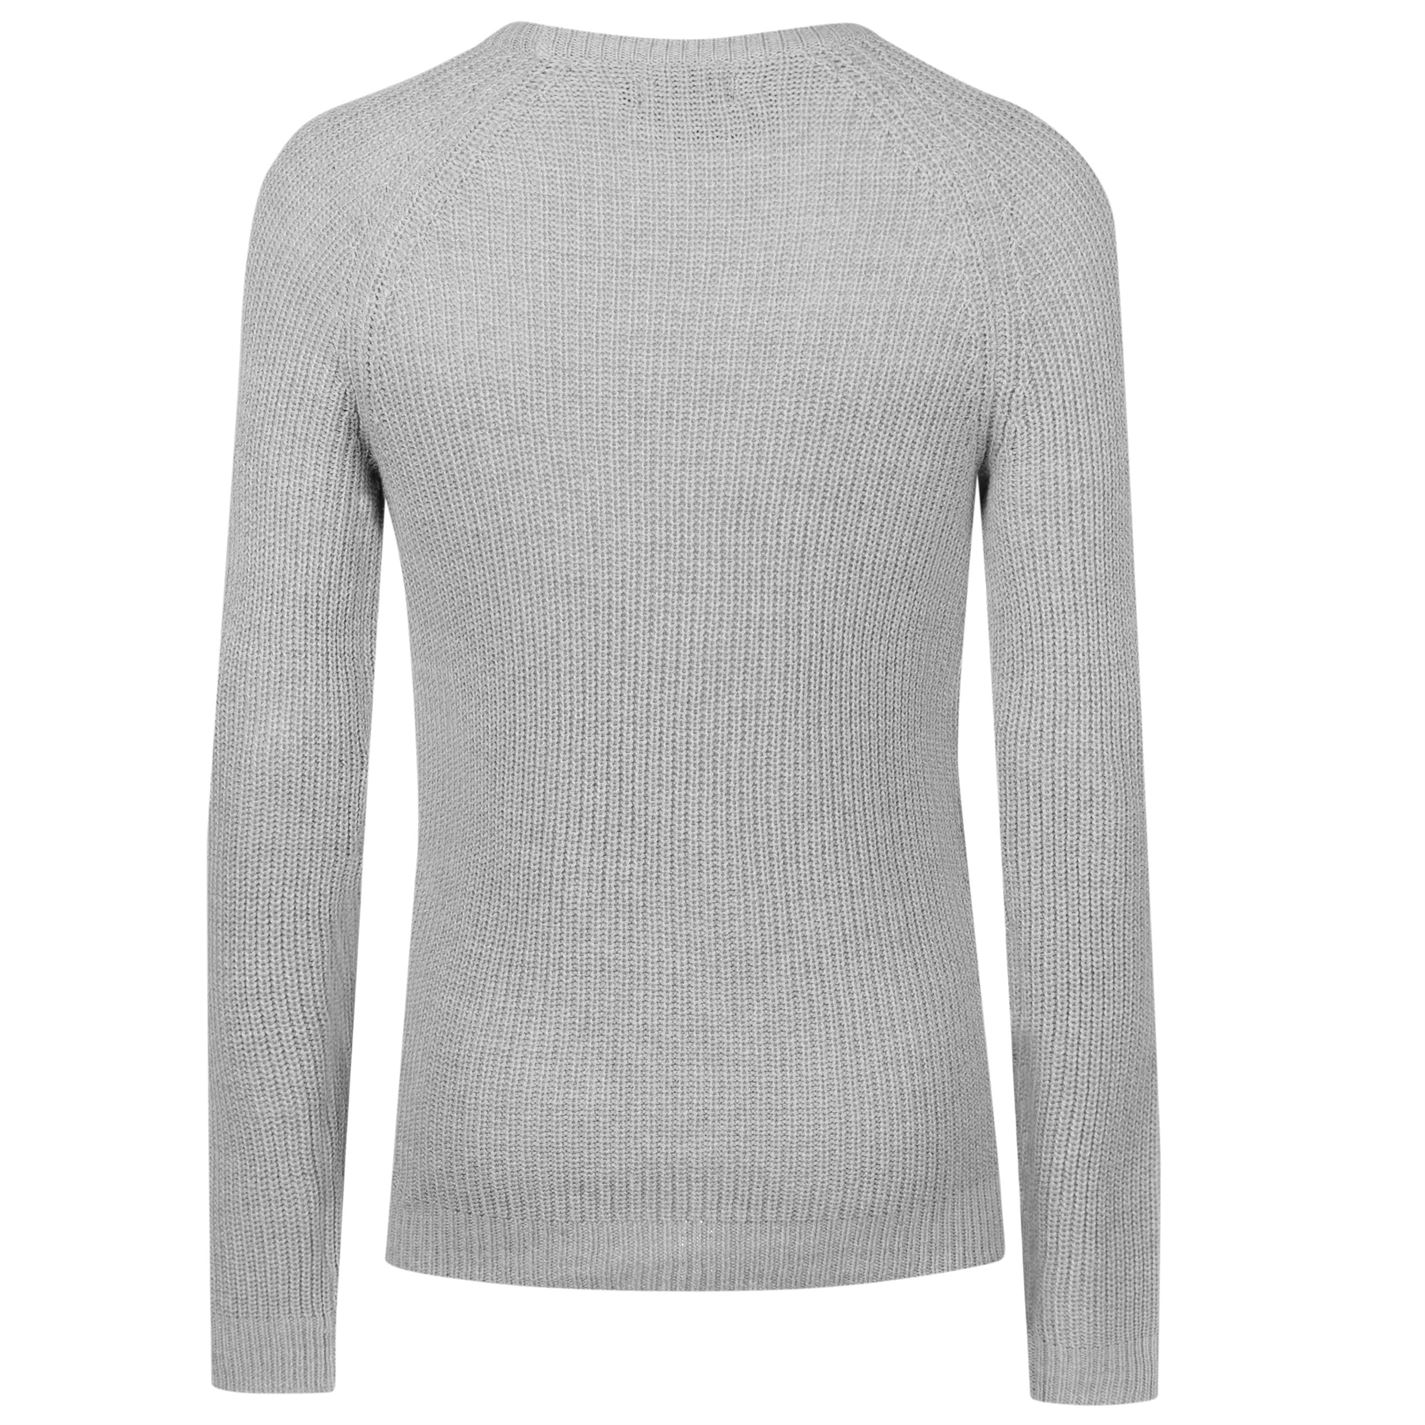 f7b449fc5d2d Jack and Jones Mens Original Panel Sweatshirt Lined Knitwear T Shirt ...